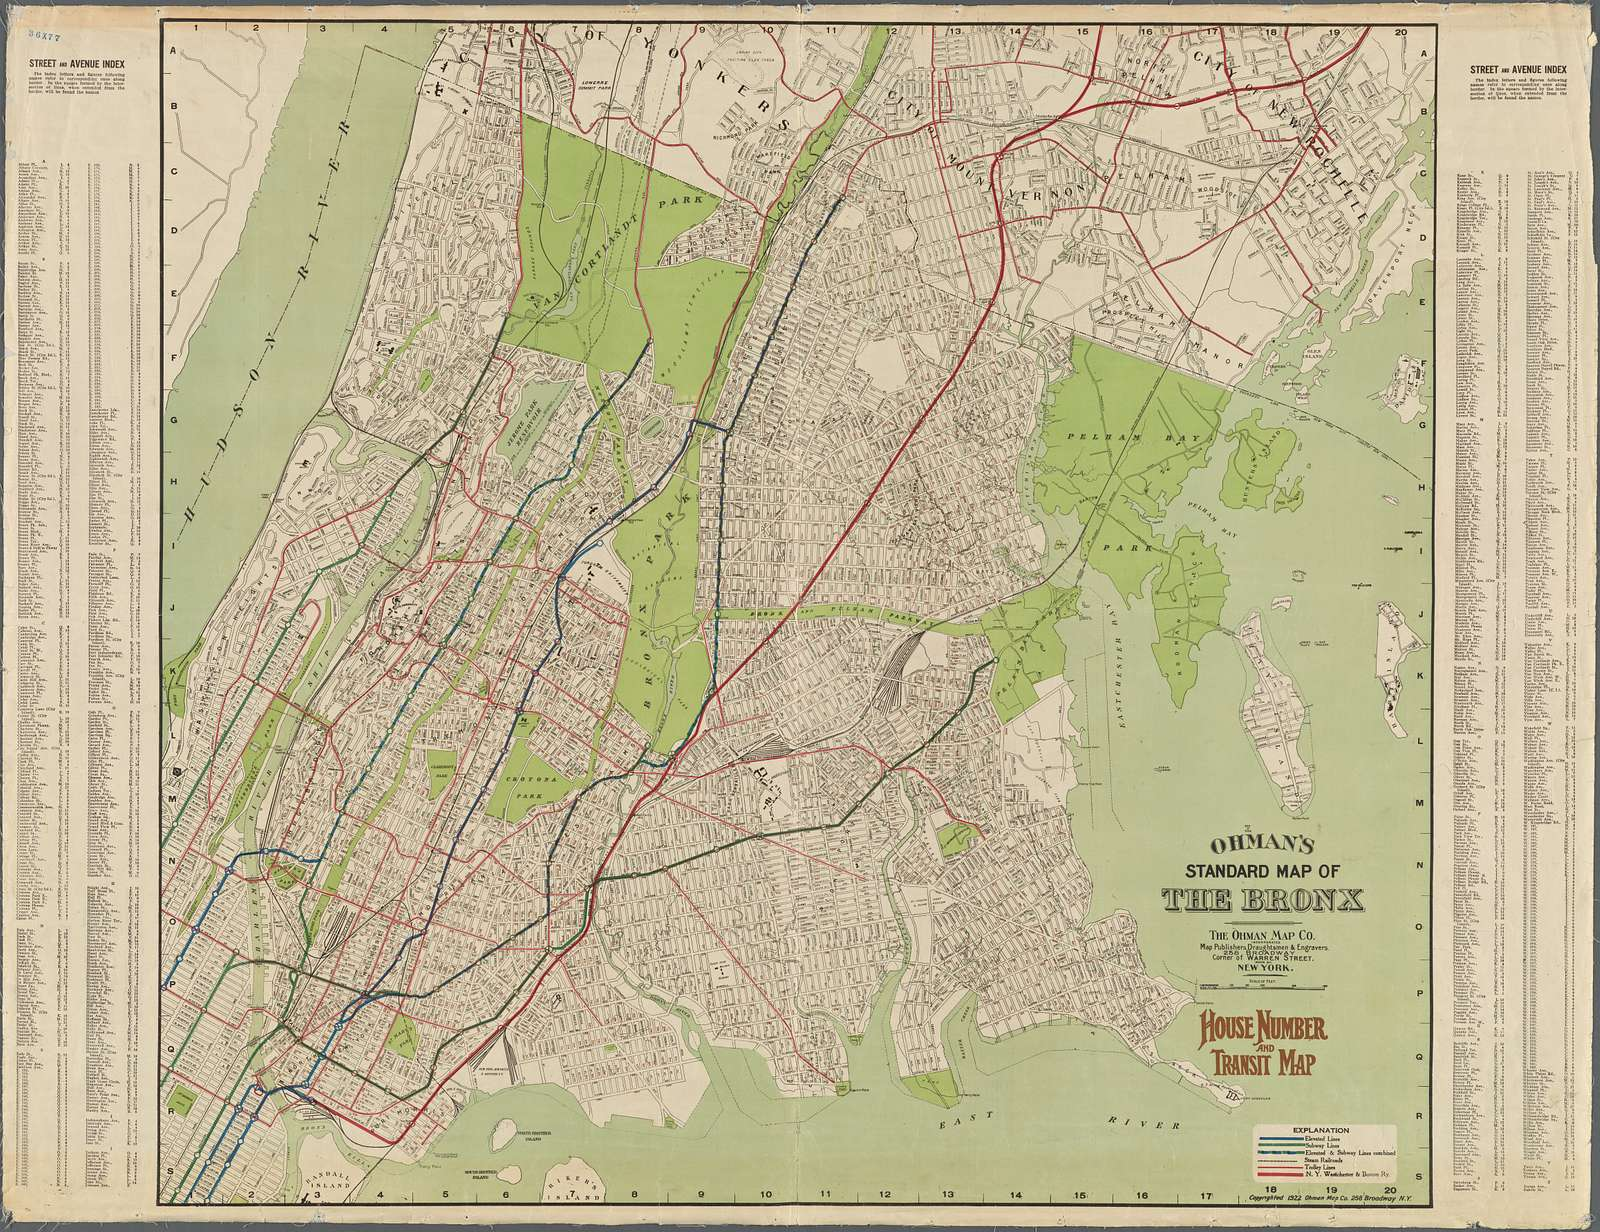 Ohman's Standard Map of the Bronx. House numbers and transit map.